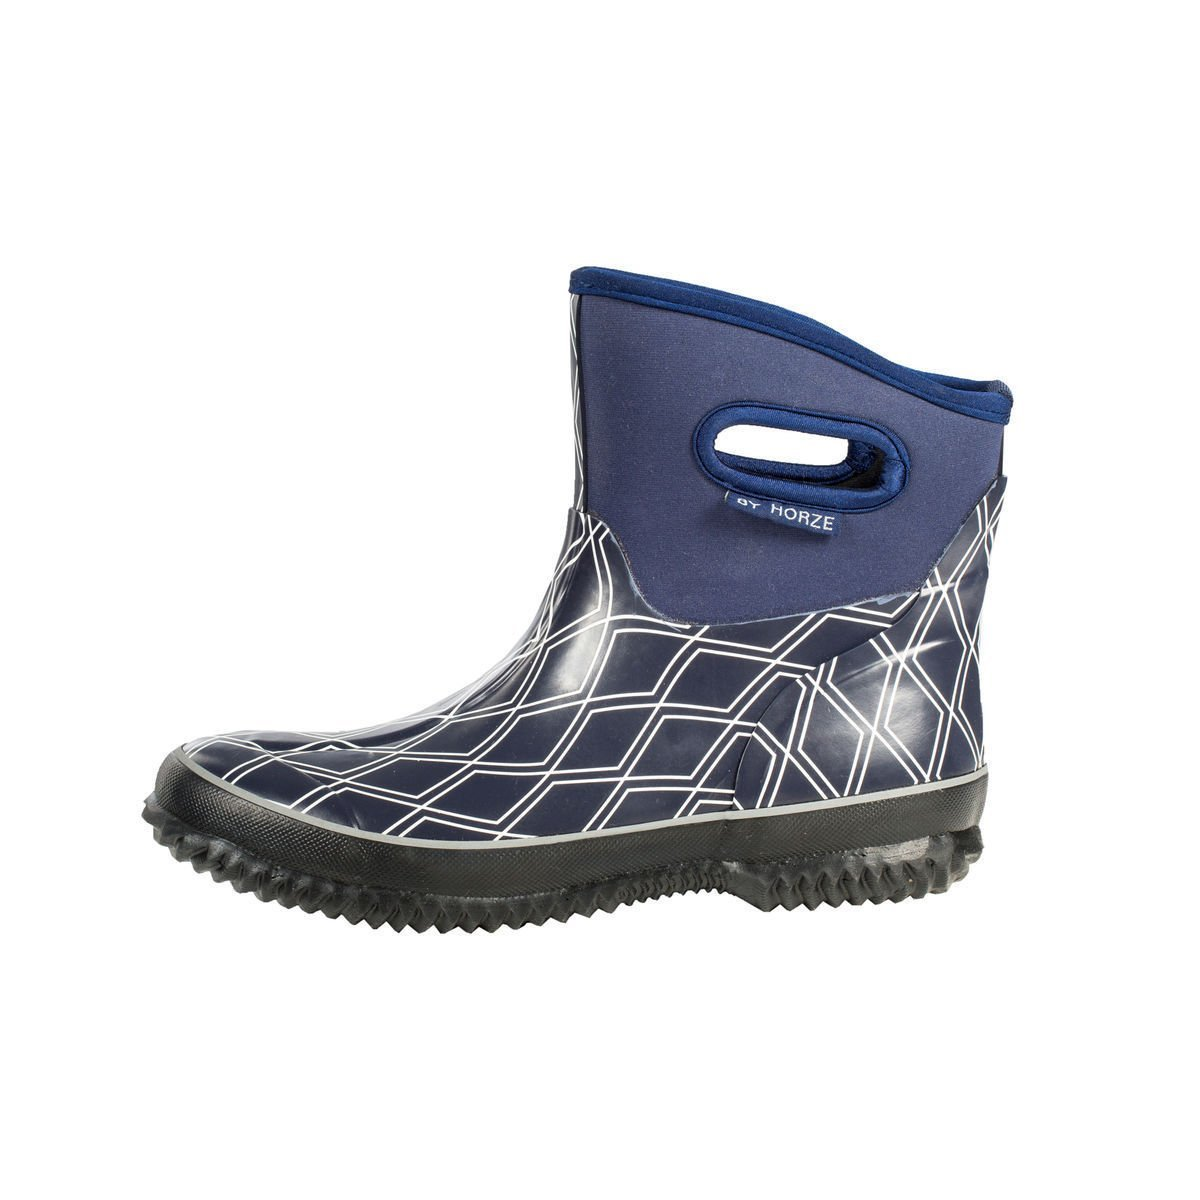 4f9ab85cd186f Buy Horze Blue Neoprene Rubber Rain Barn Farm Muck Pull On Boots ...